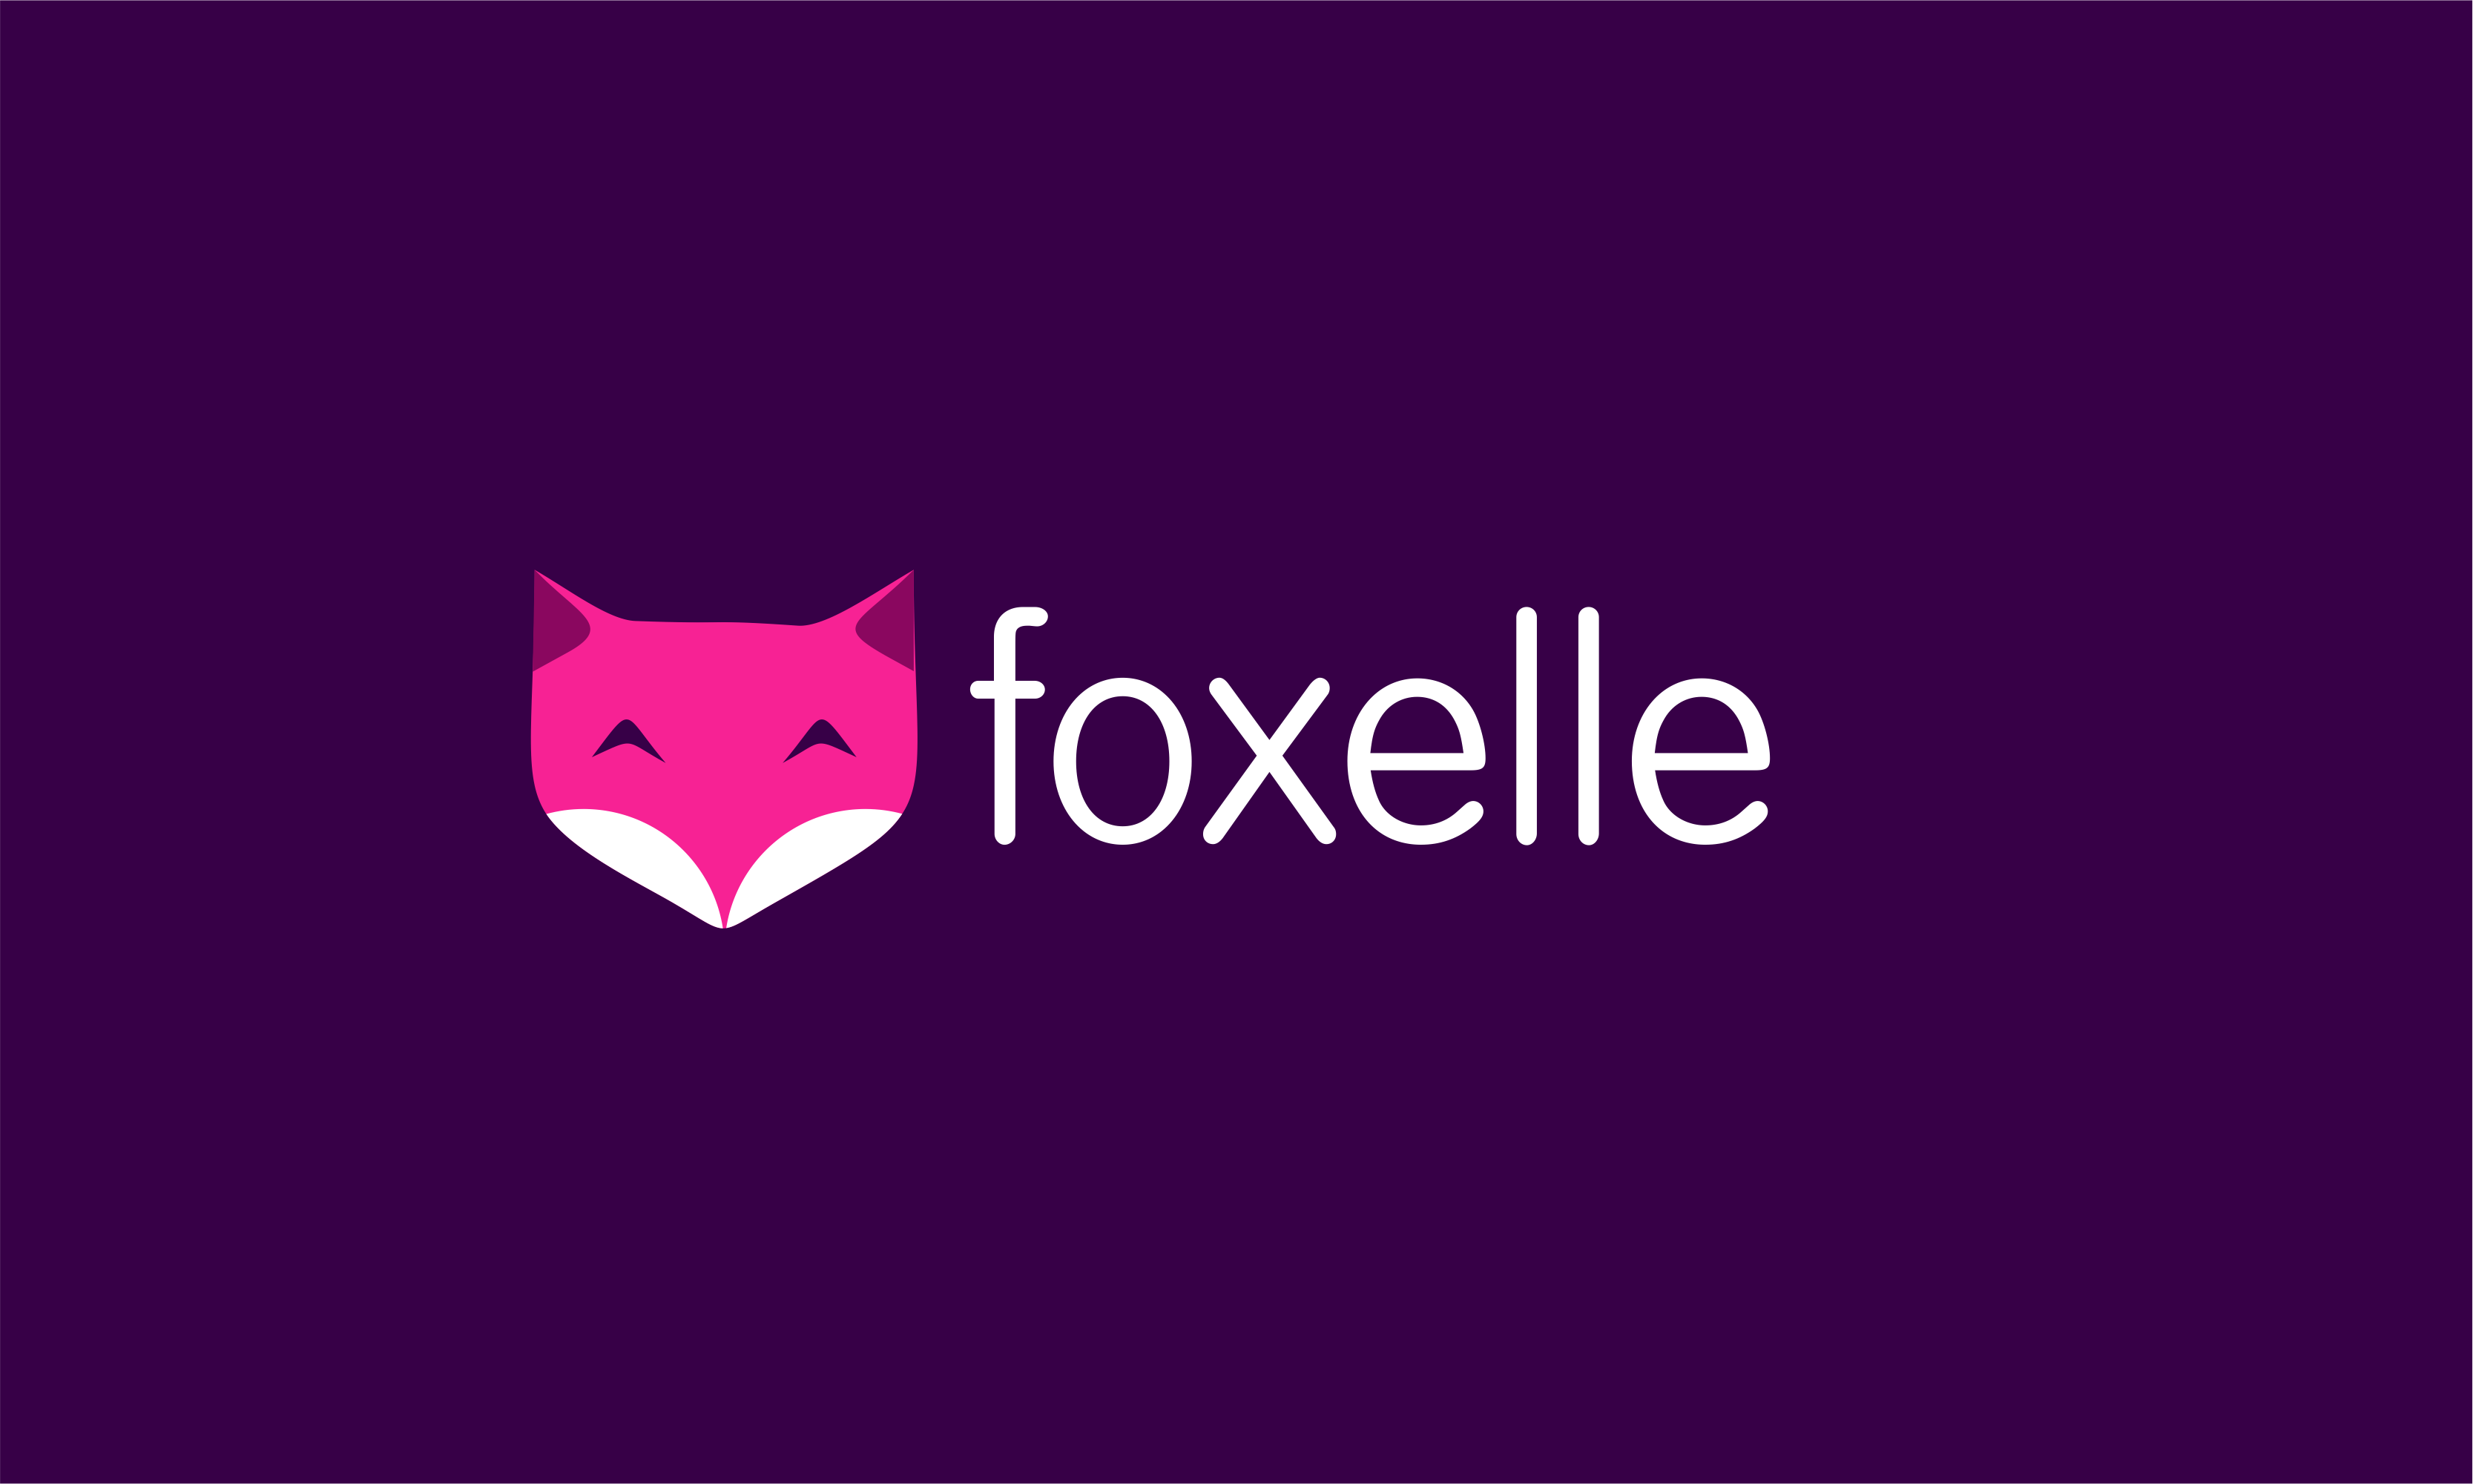 Foxelle - Retail business name for sale